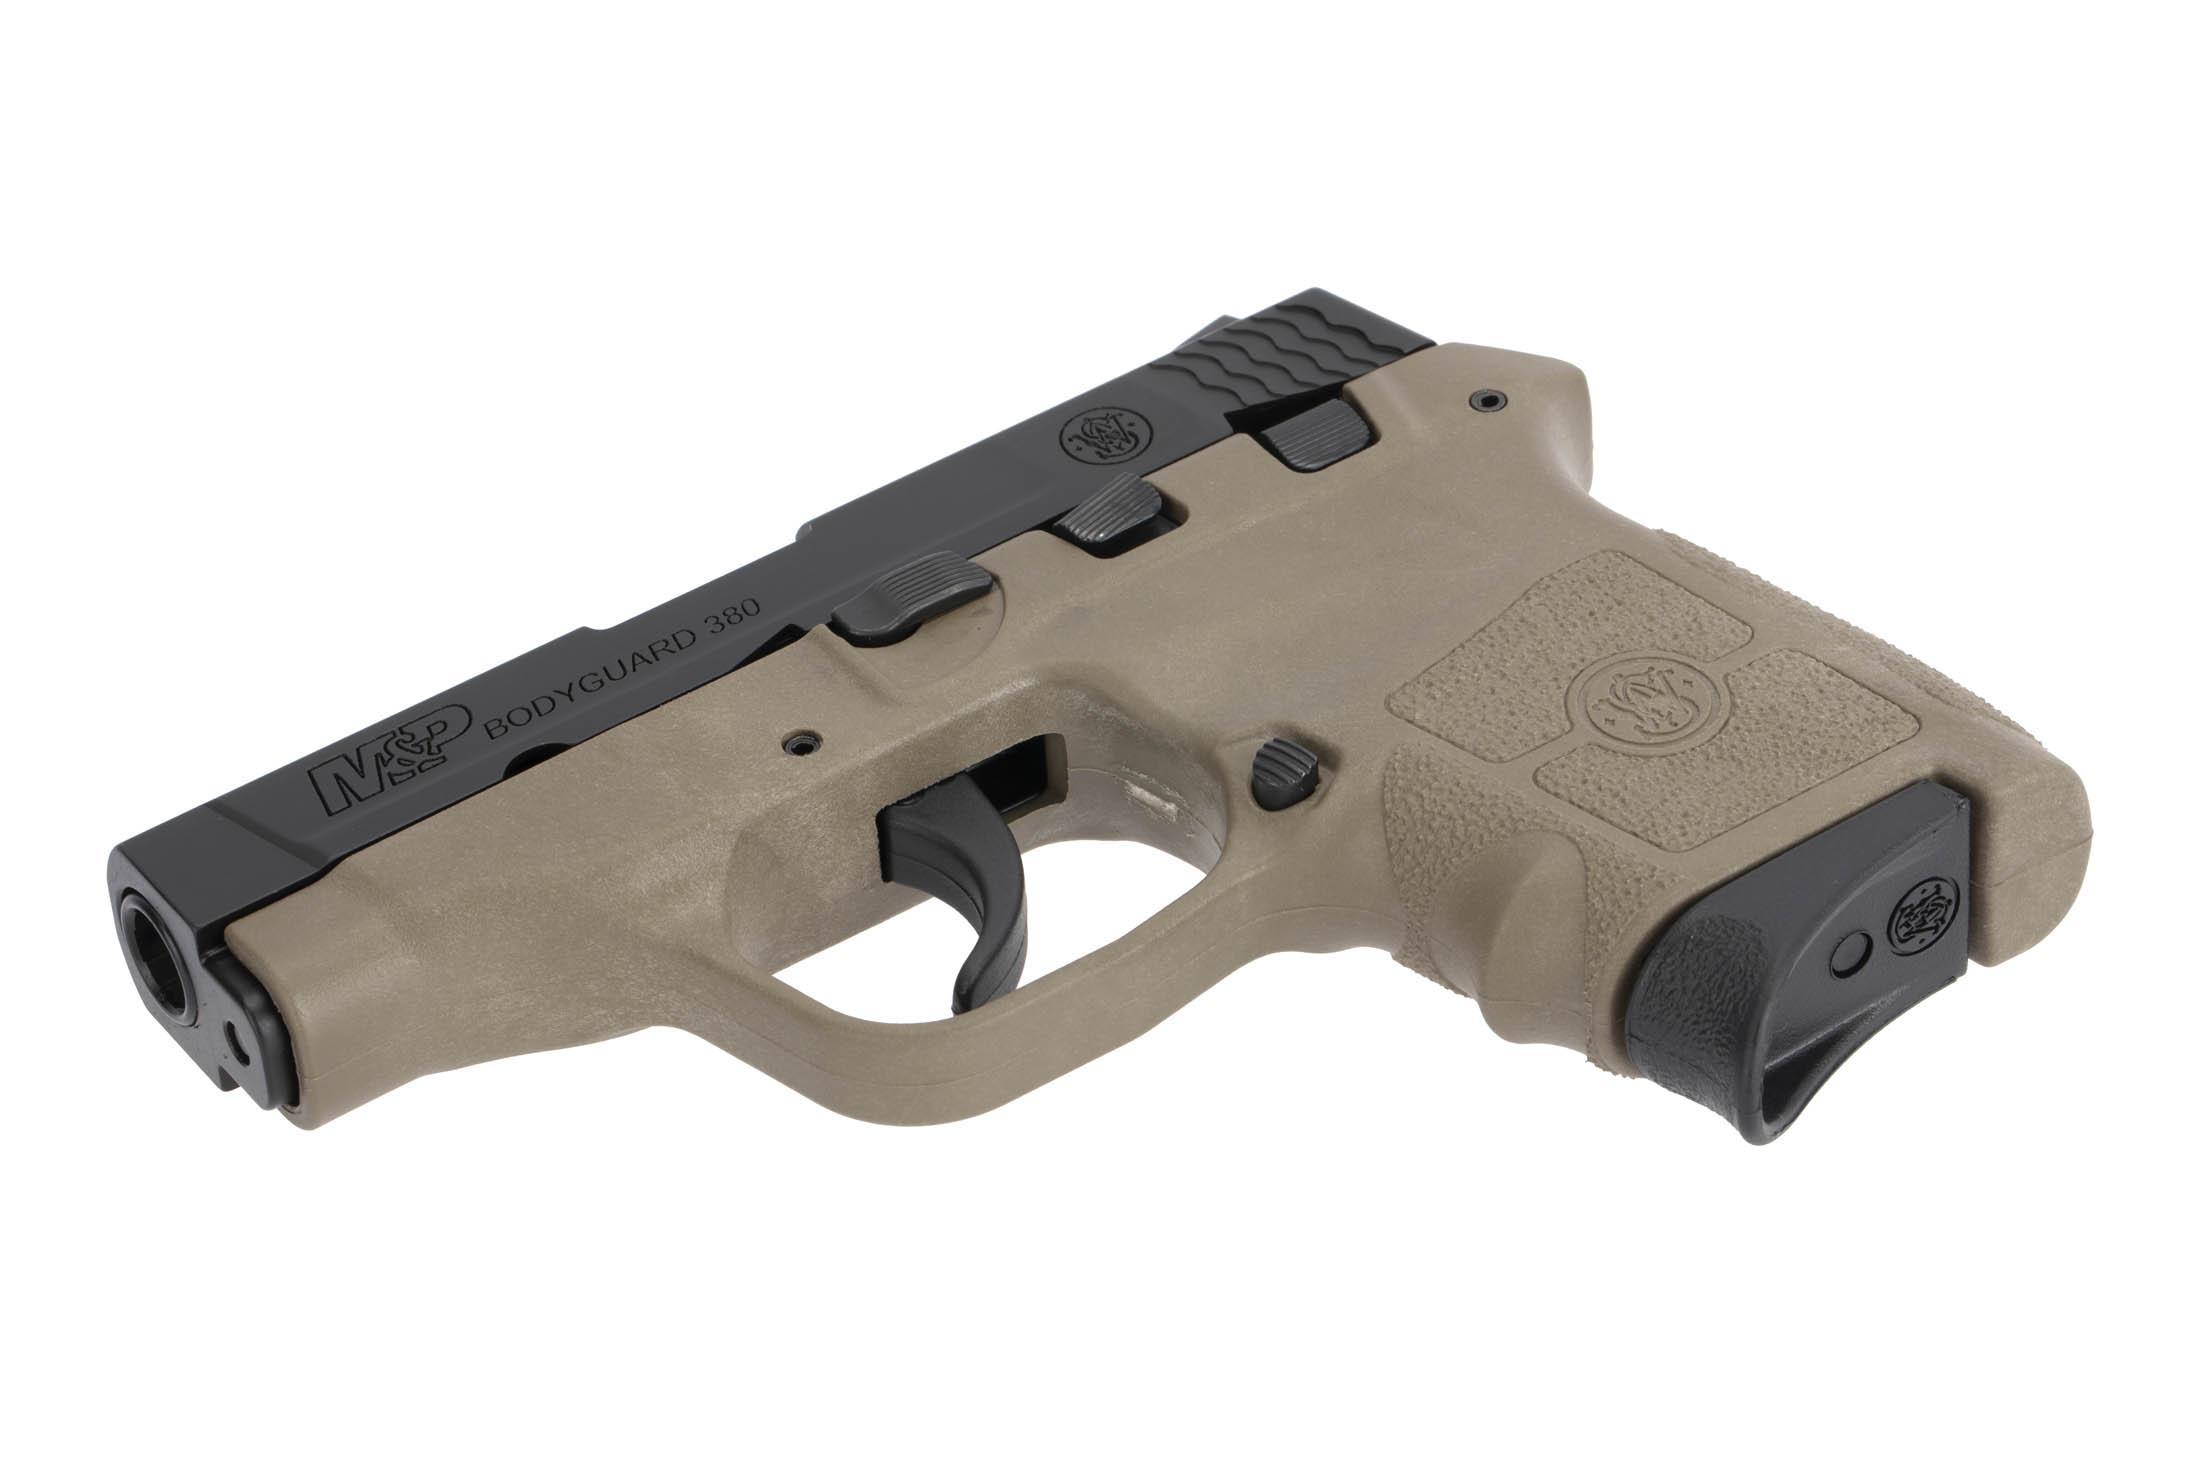 The Smith & Wesson M&P Bodyguard is a .380 ACP Sub Compact 6 round handgun with rear cocking serrations